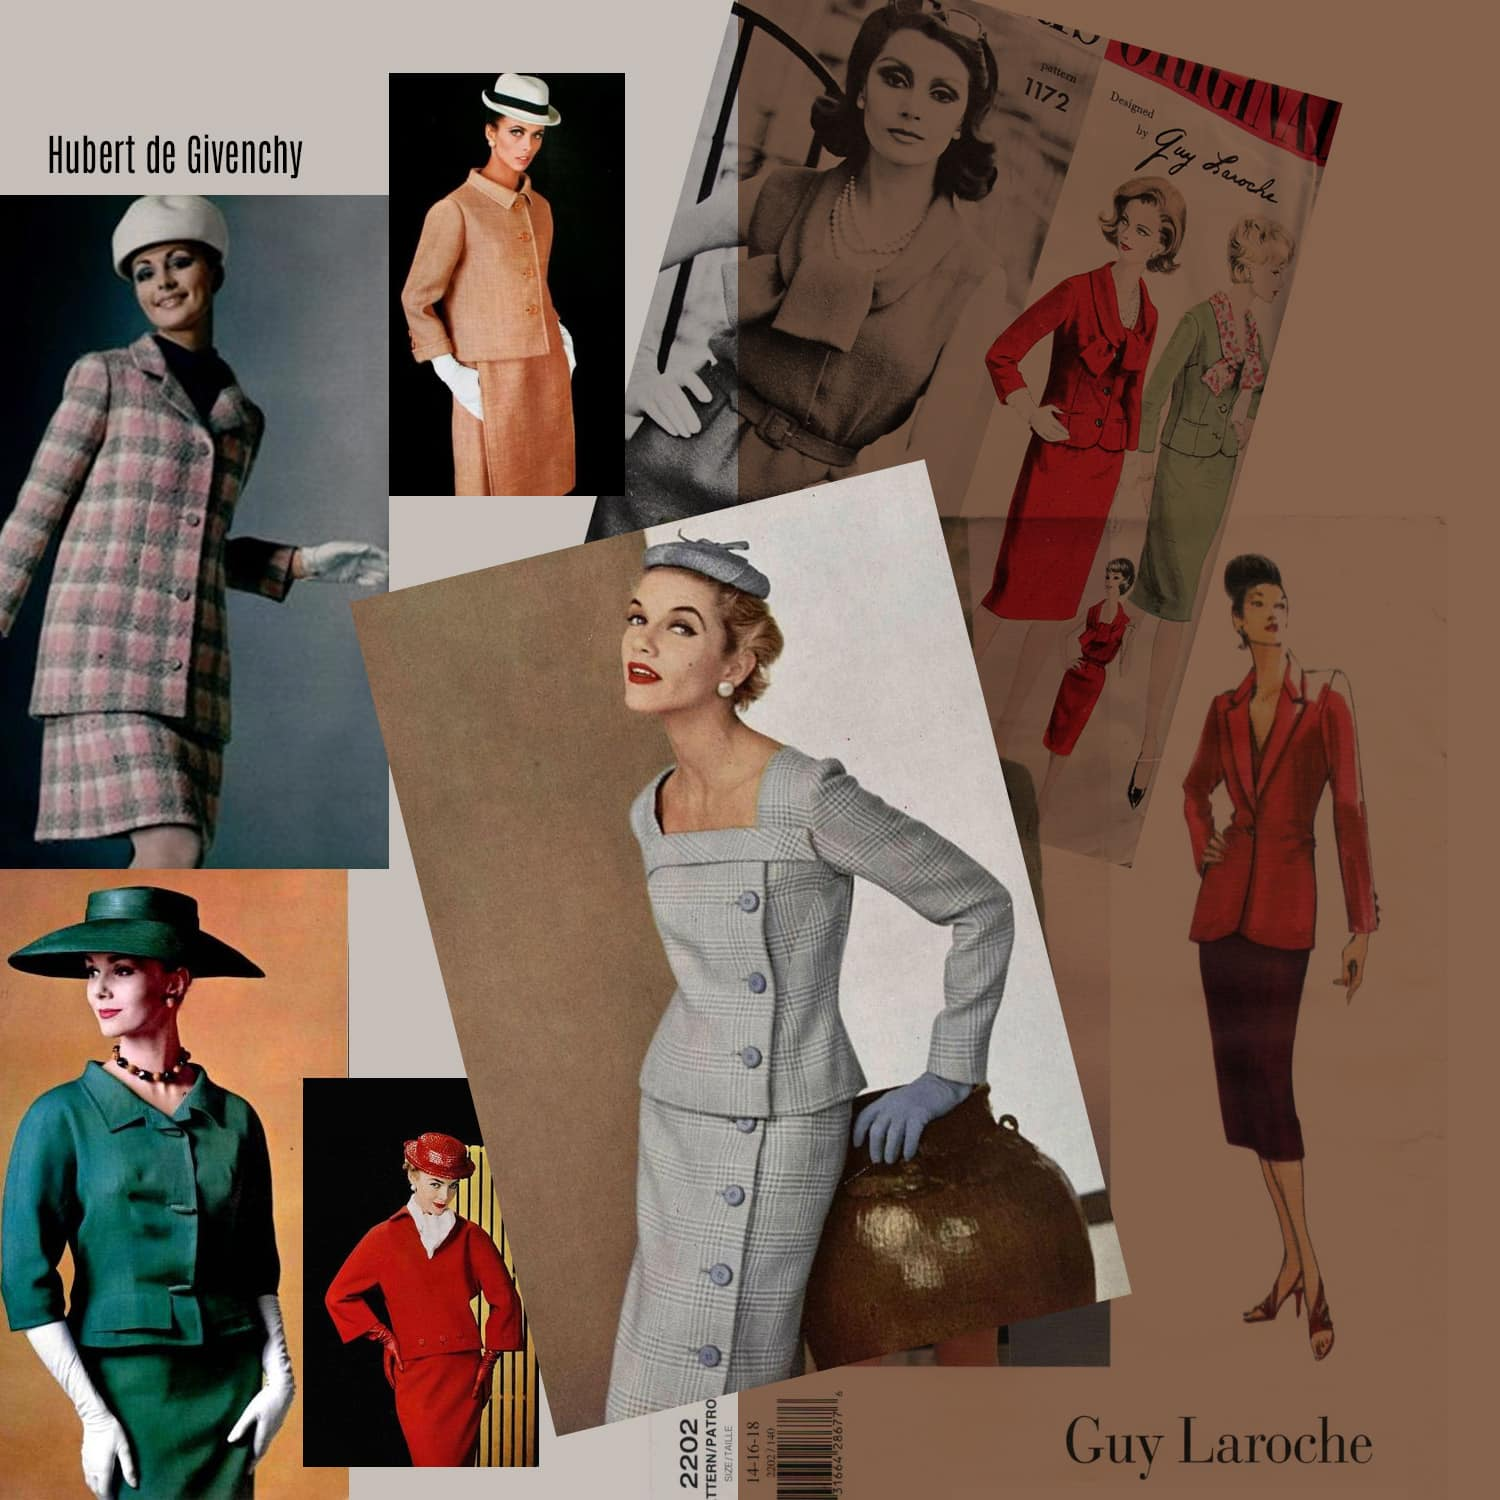 Hubert de Givenchy and Guy Laroche - designing elegance for business women